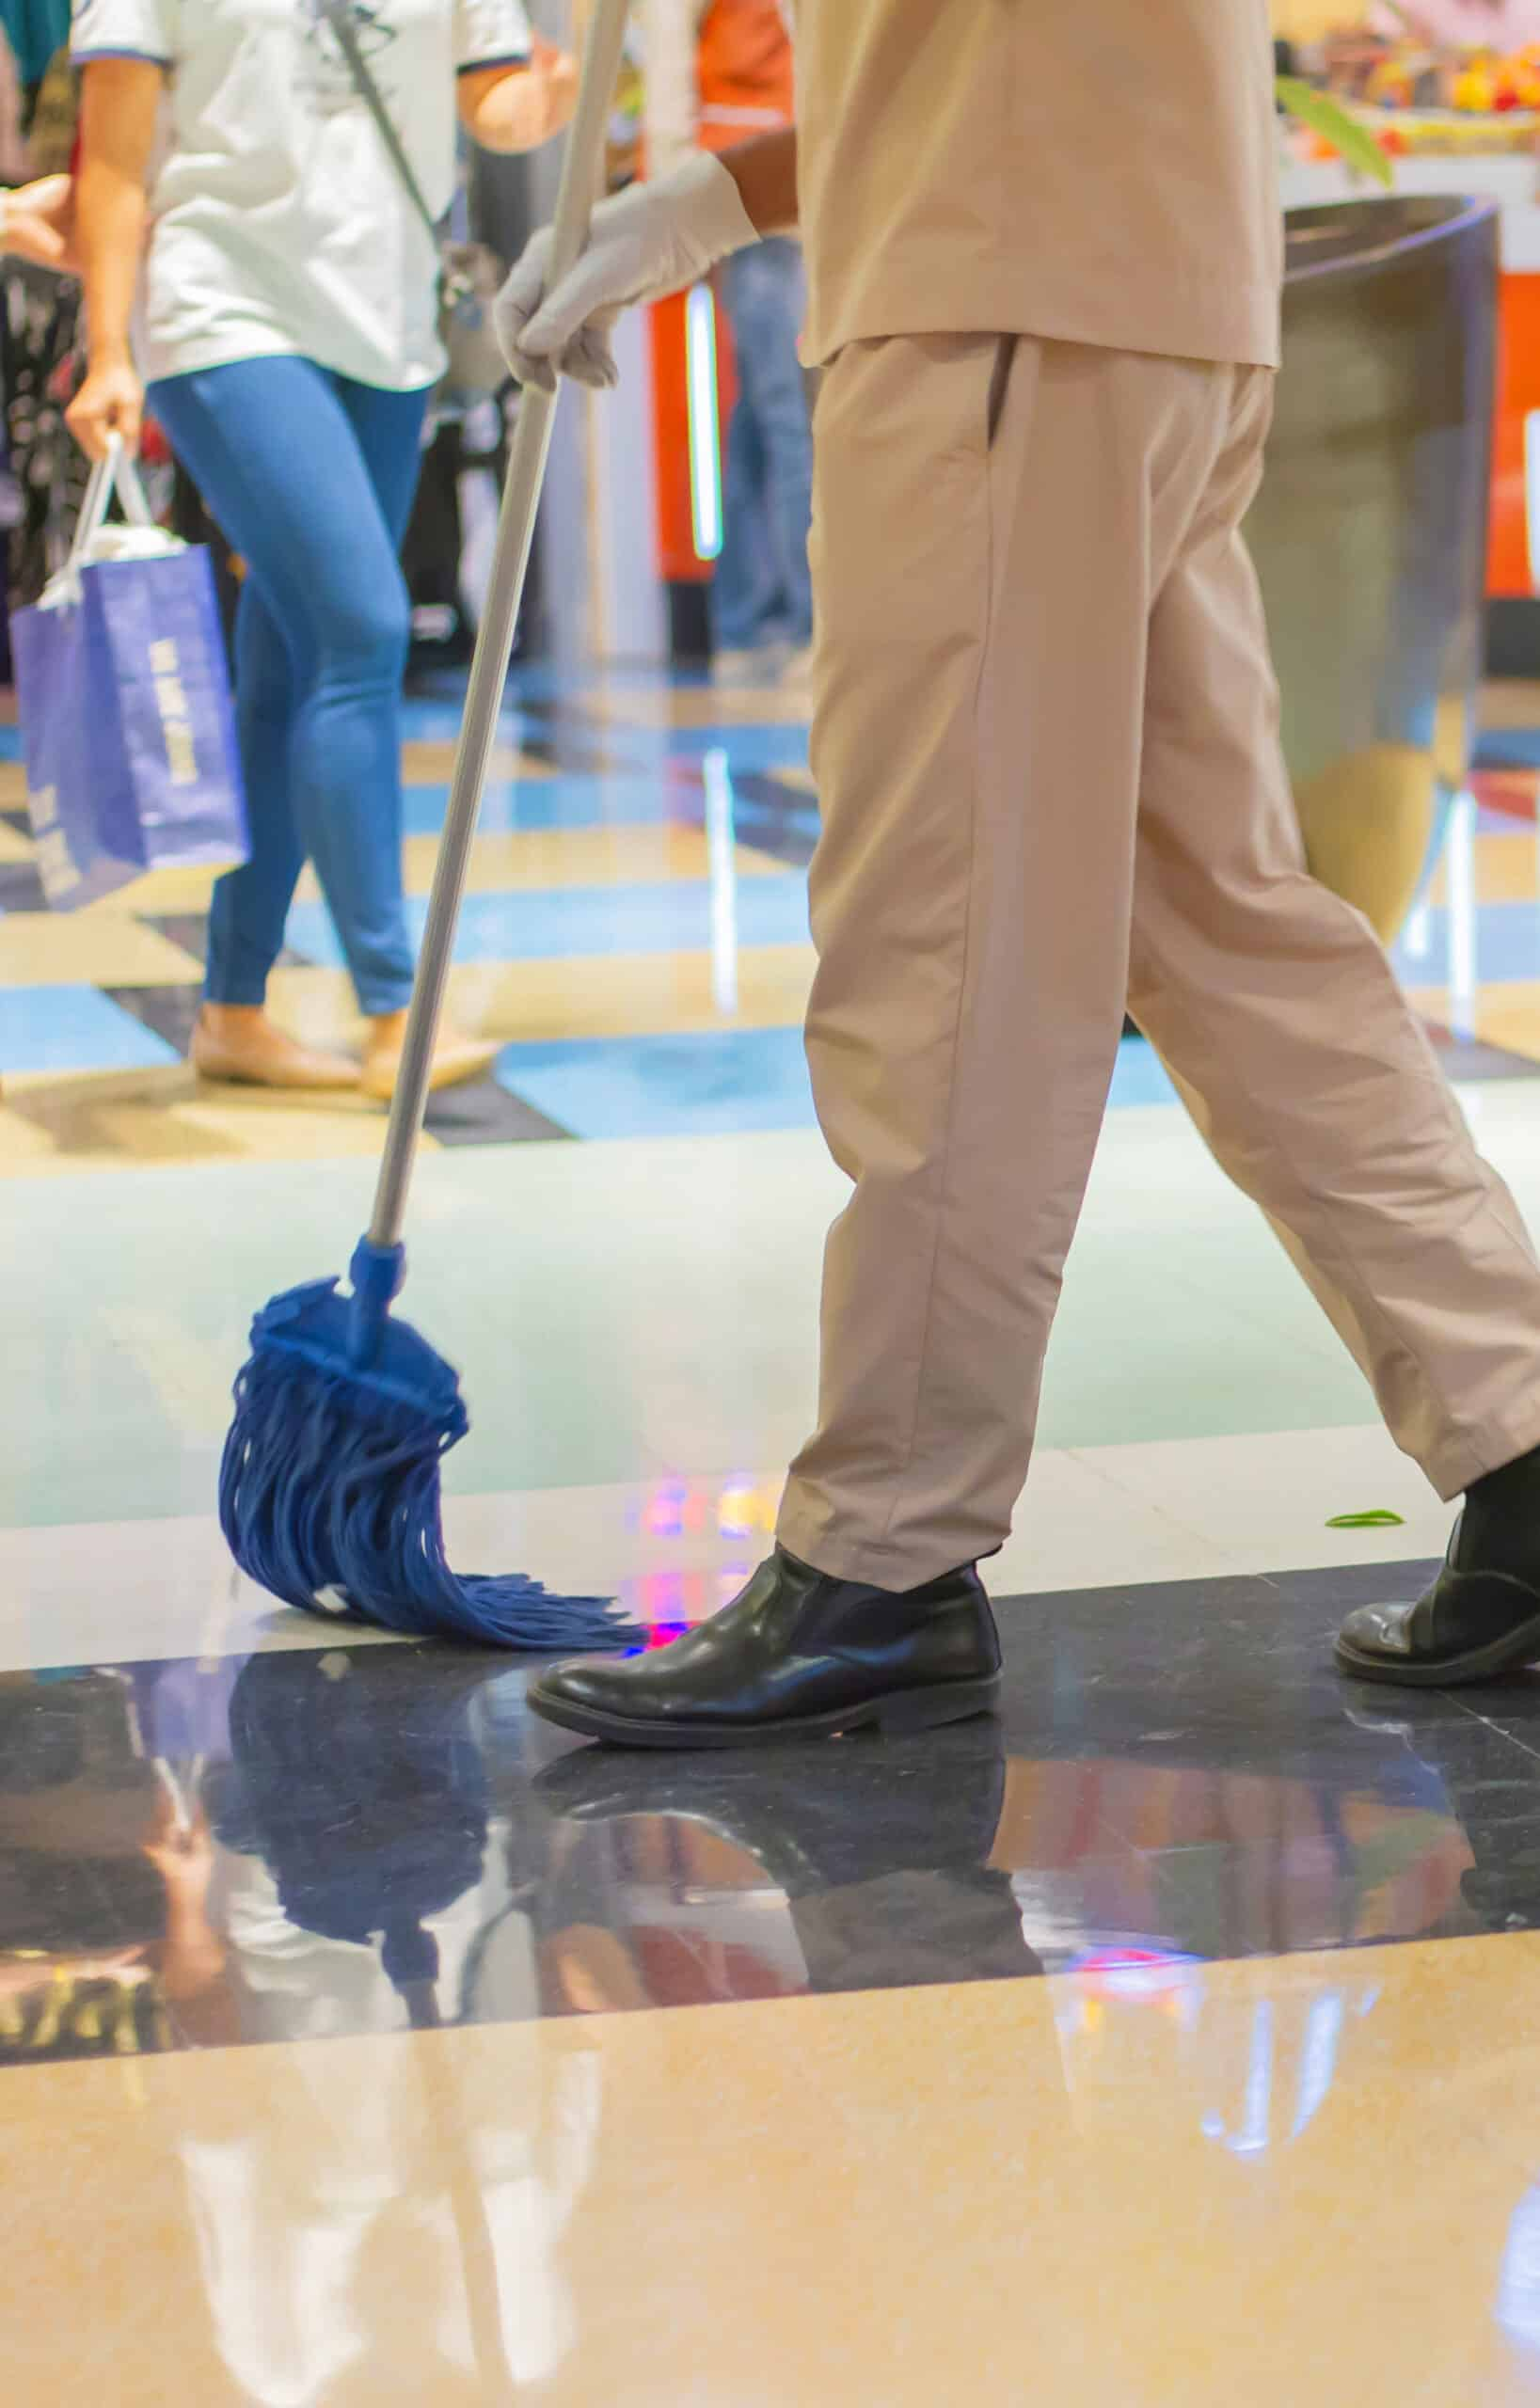 janitor people cleaning floor in the mall